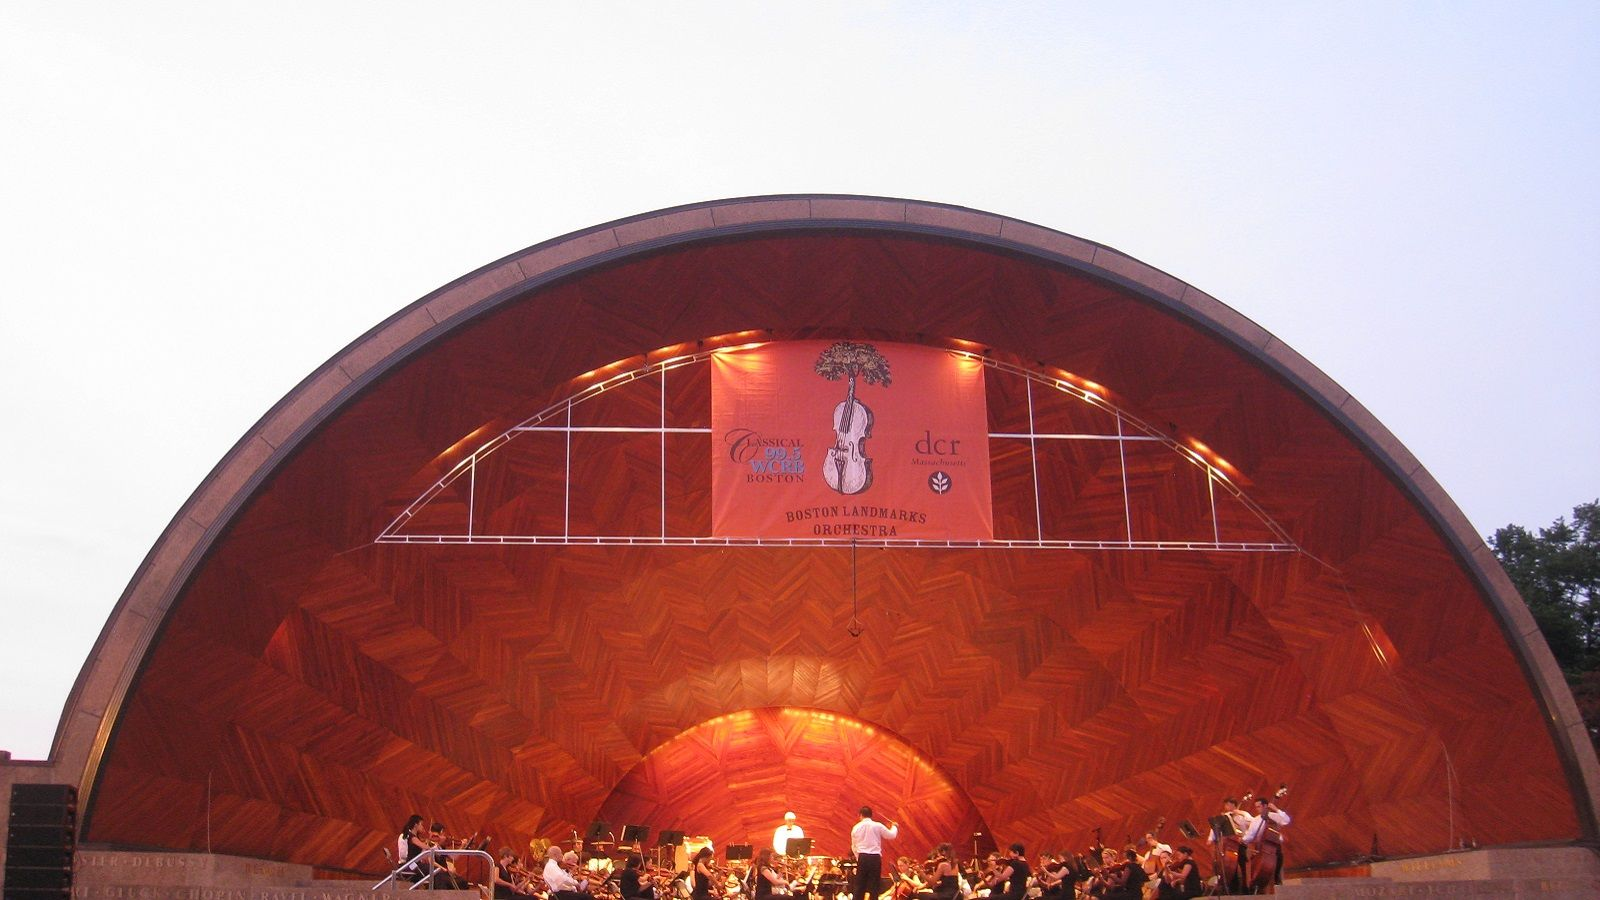 Boston Music Venues - DCR's Hatch Memorial Shell